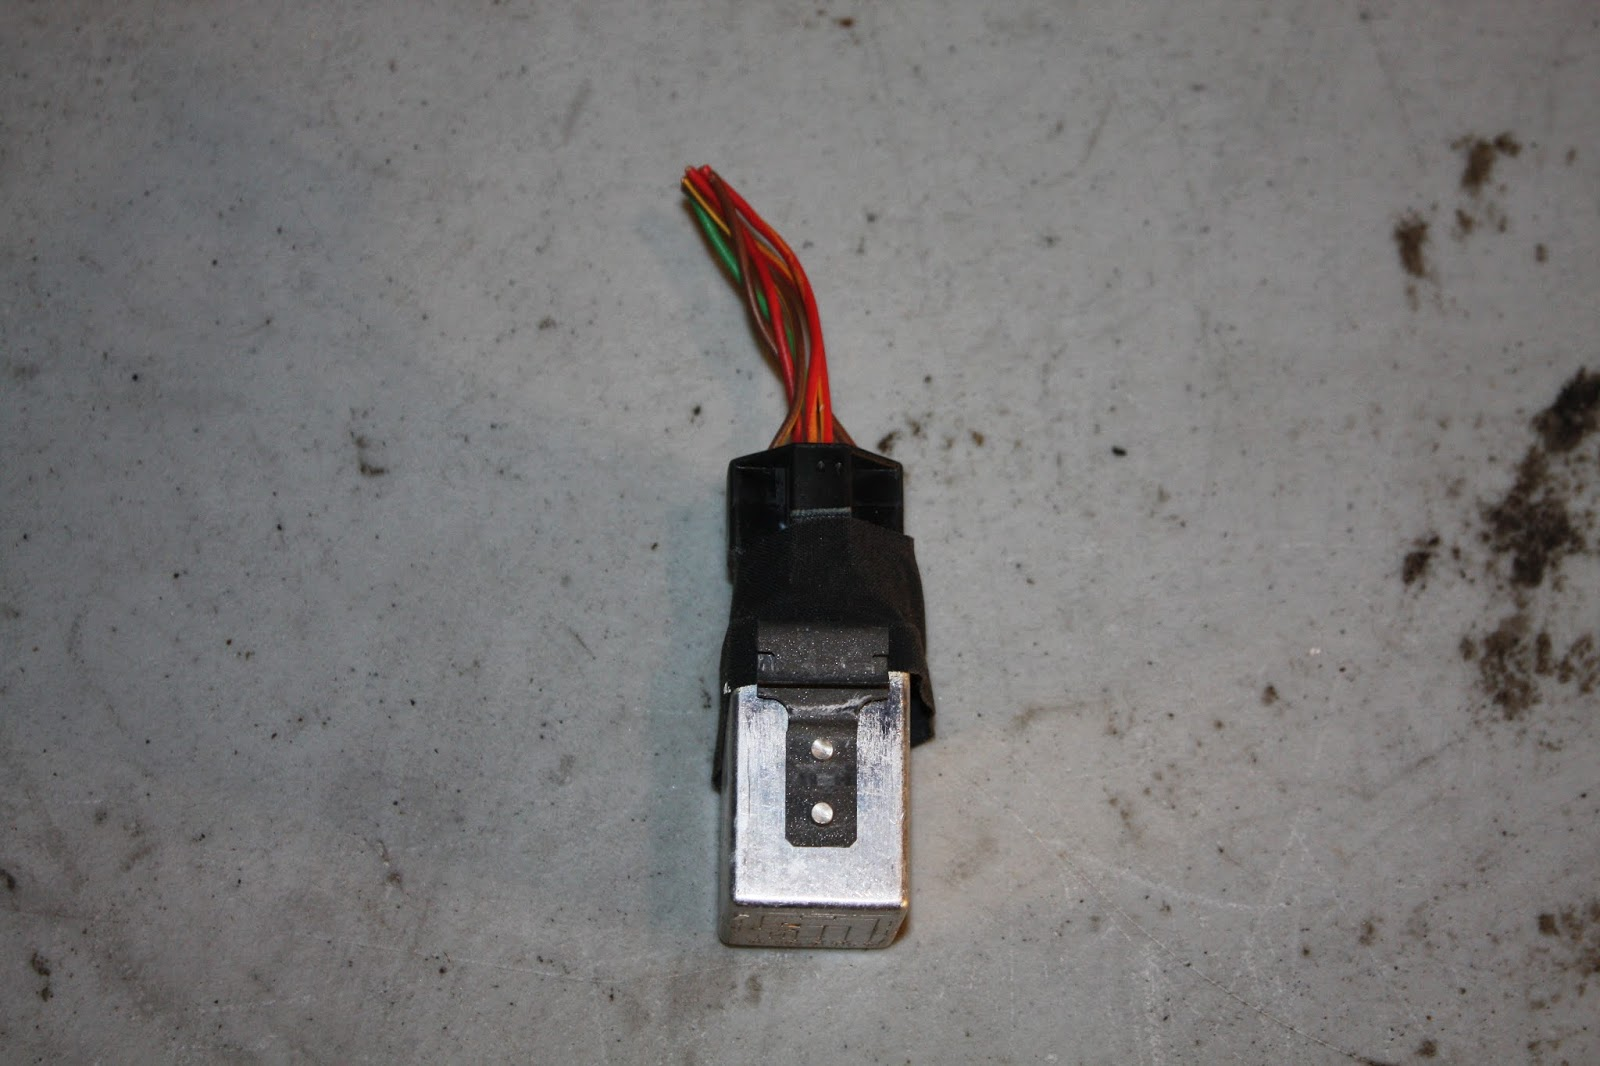 Krevcon Bmw Parts E30 Relay W Harness 1 154 894 2 Wiring Connectors 11